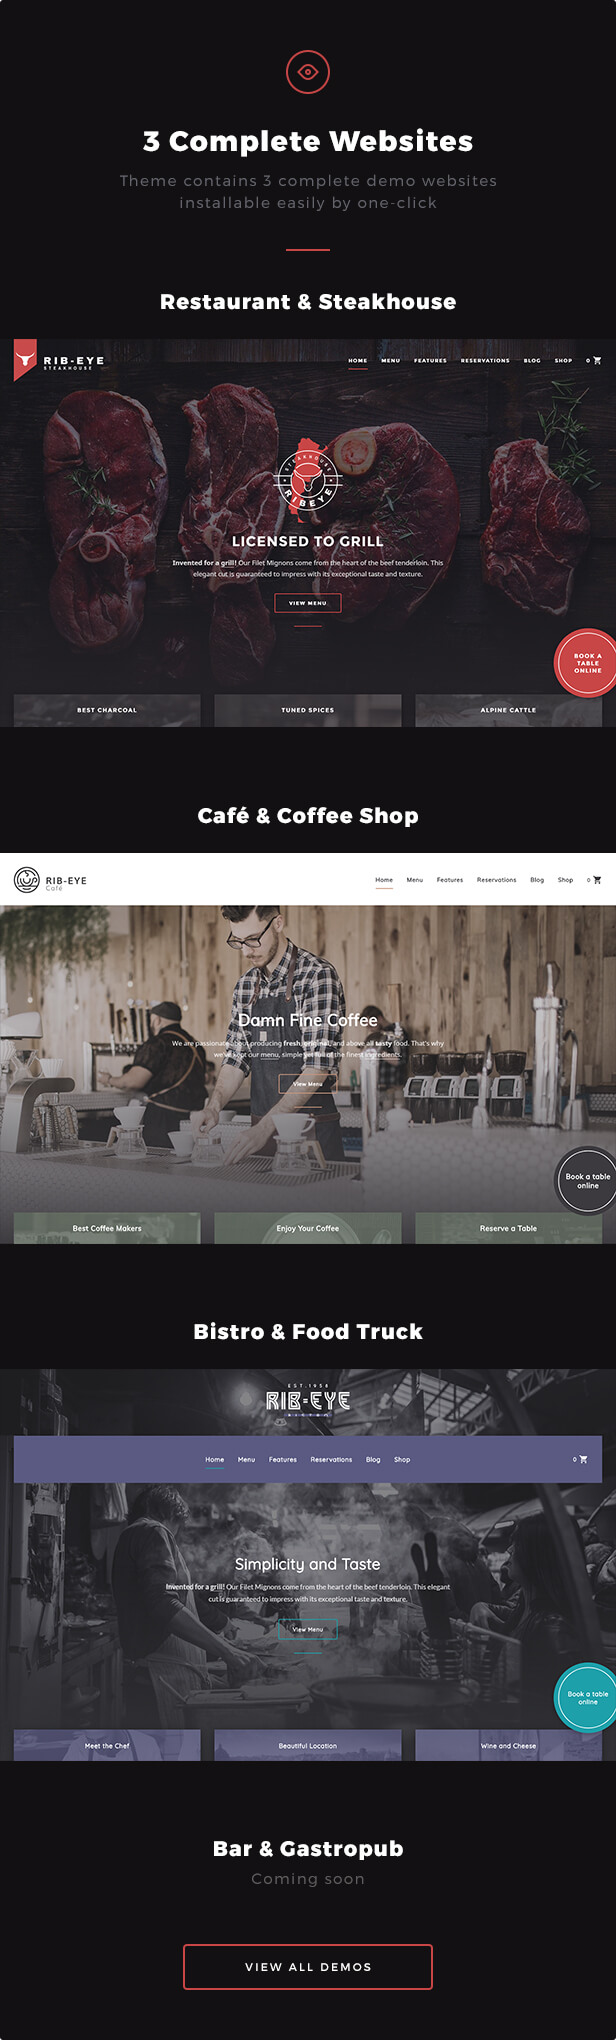 3 Complete Websites: Theme contains 3 complete demo websites installable easily by one-click - Restaurant & Steakhouse, Café & Coffee Shop, Bistro & Food Truck